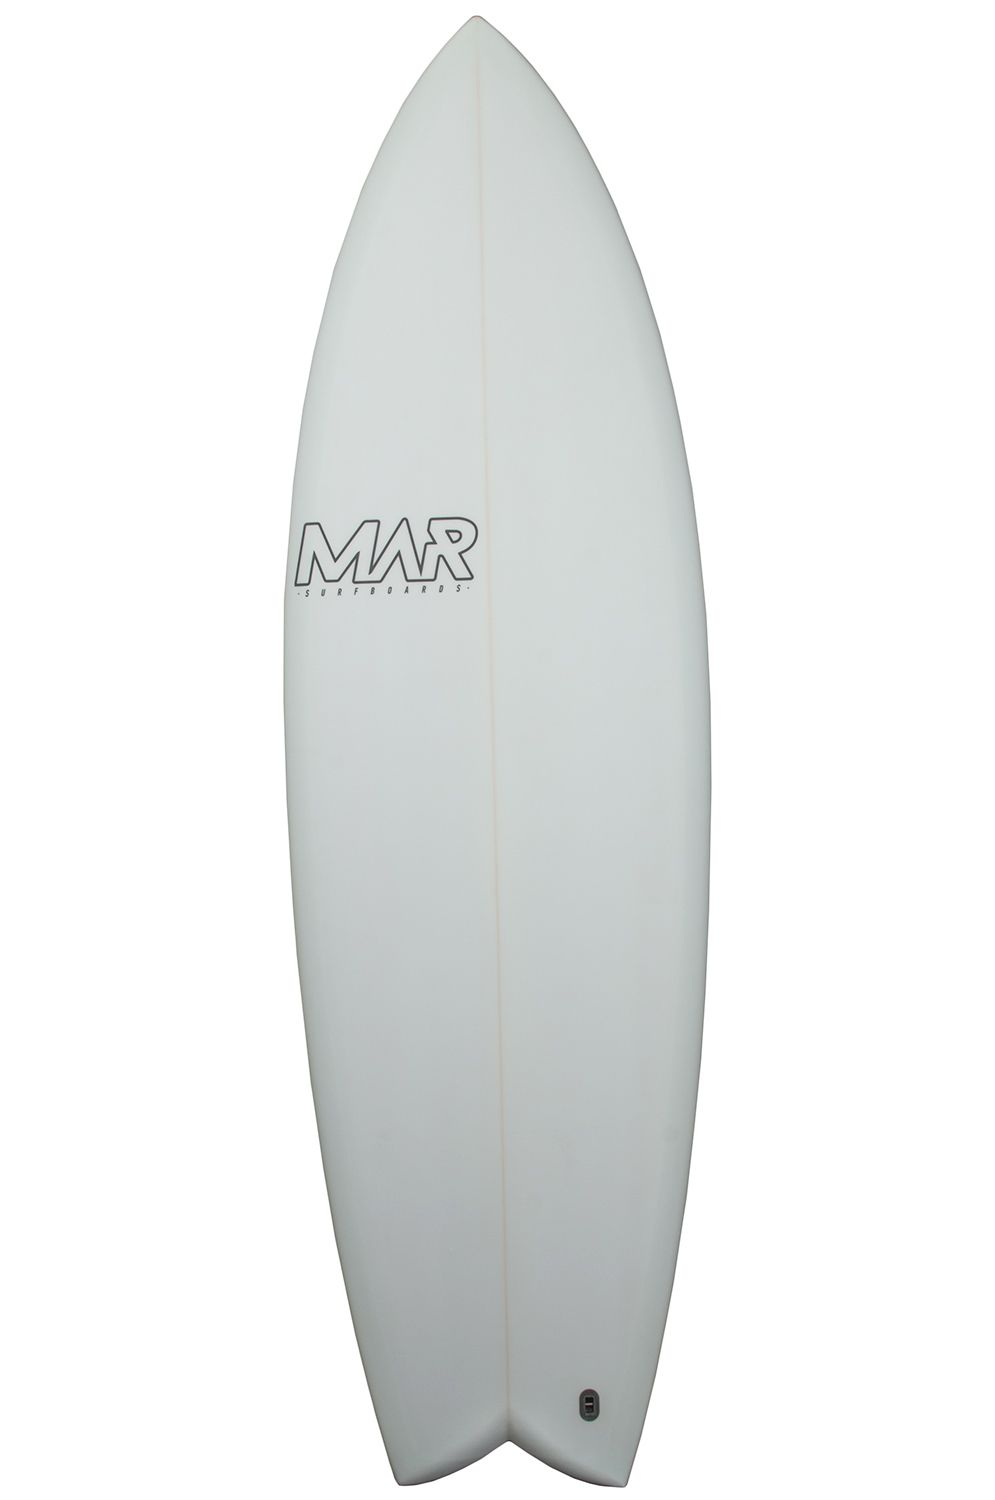 Prancha Surf Mar 5'10 THE 4 MINT Fish Tail - Color FCS II Multisystem 5ft10